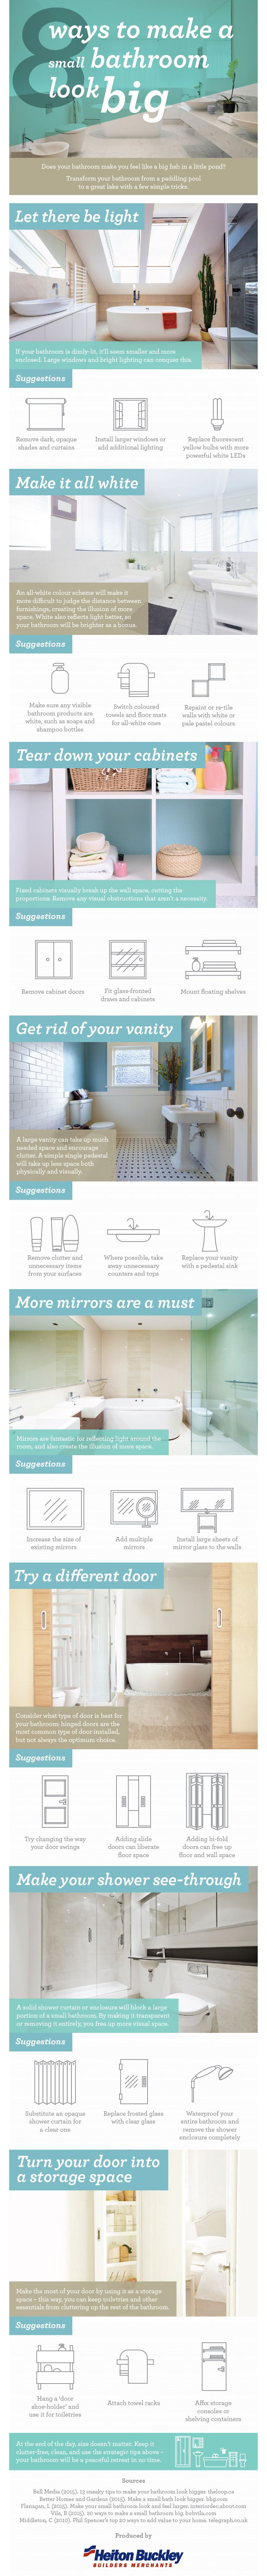 Bathroom Remodeling Ideas to Make the Most of Small Spaces | Home Remodeling Contractors | Sebring Services